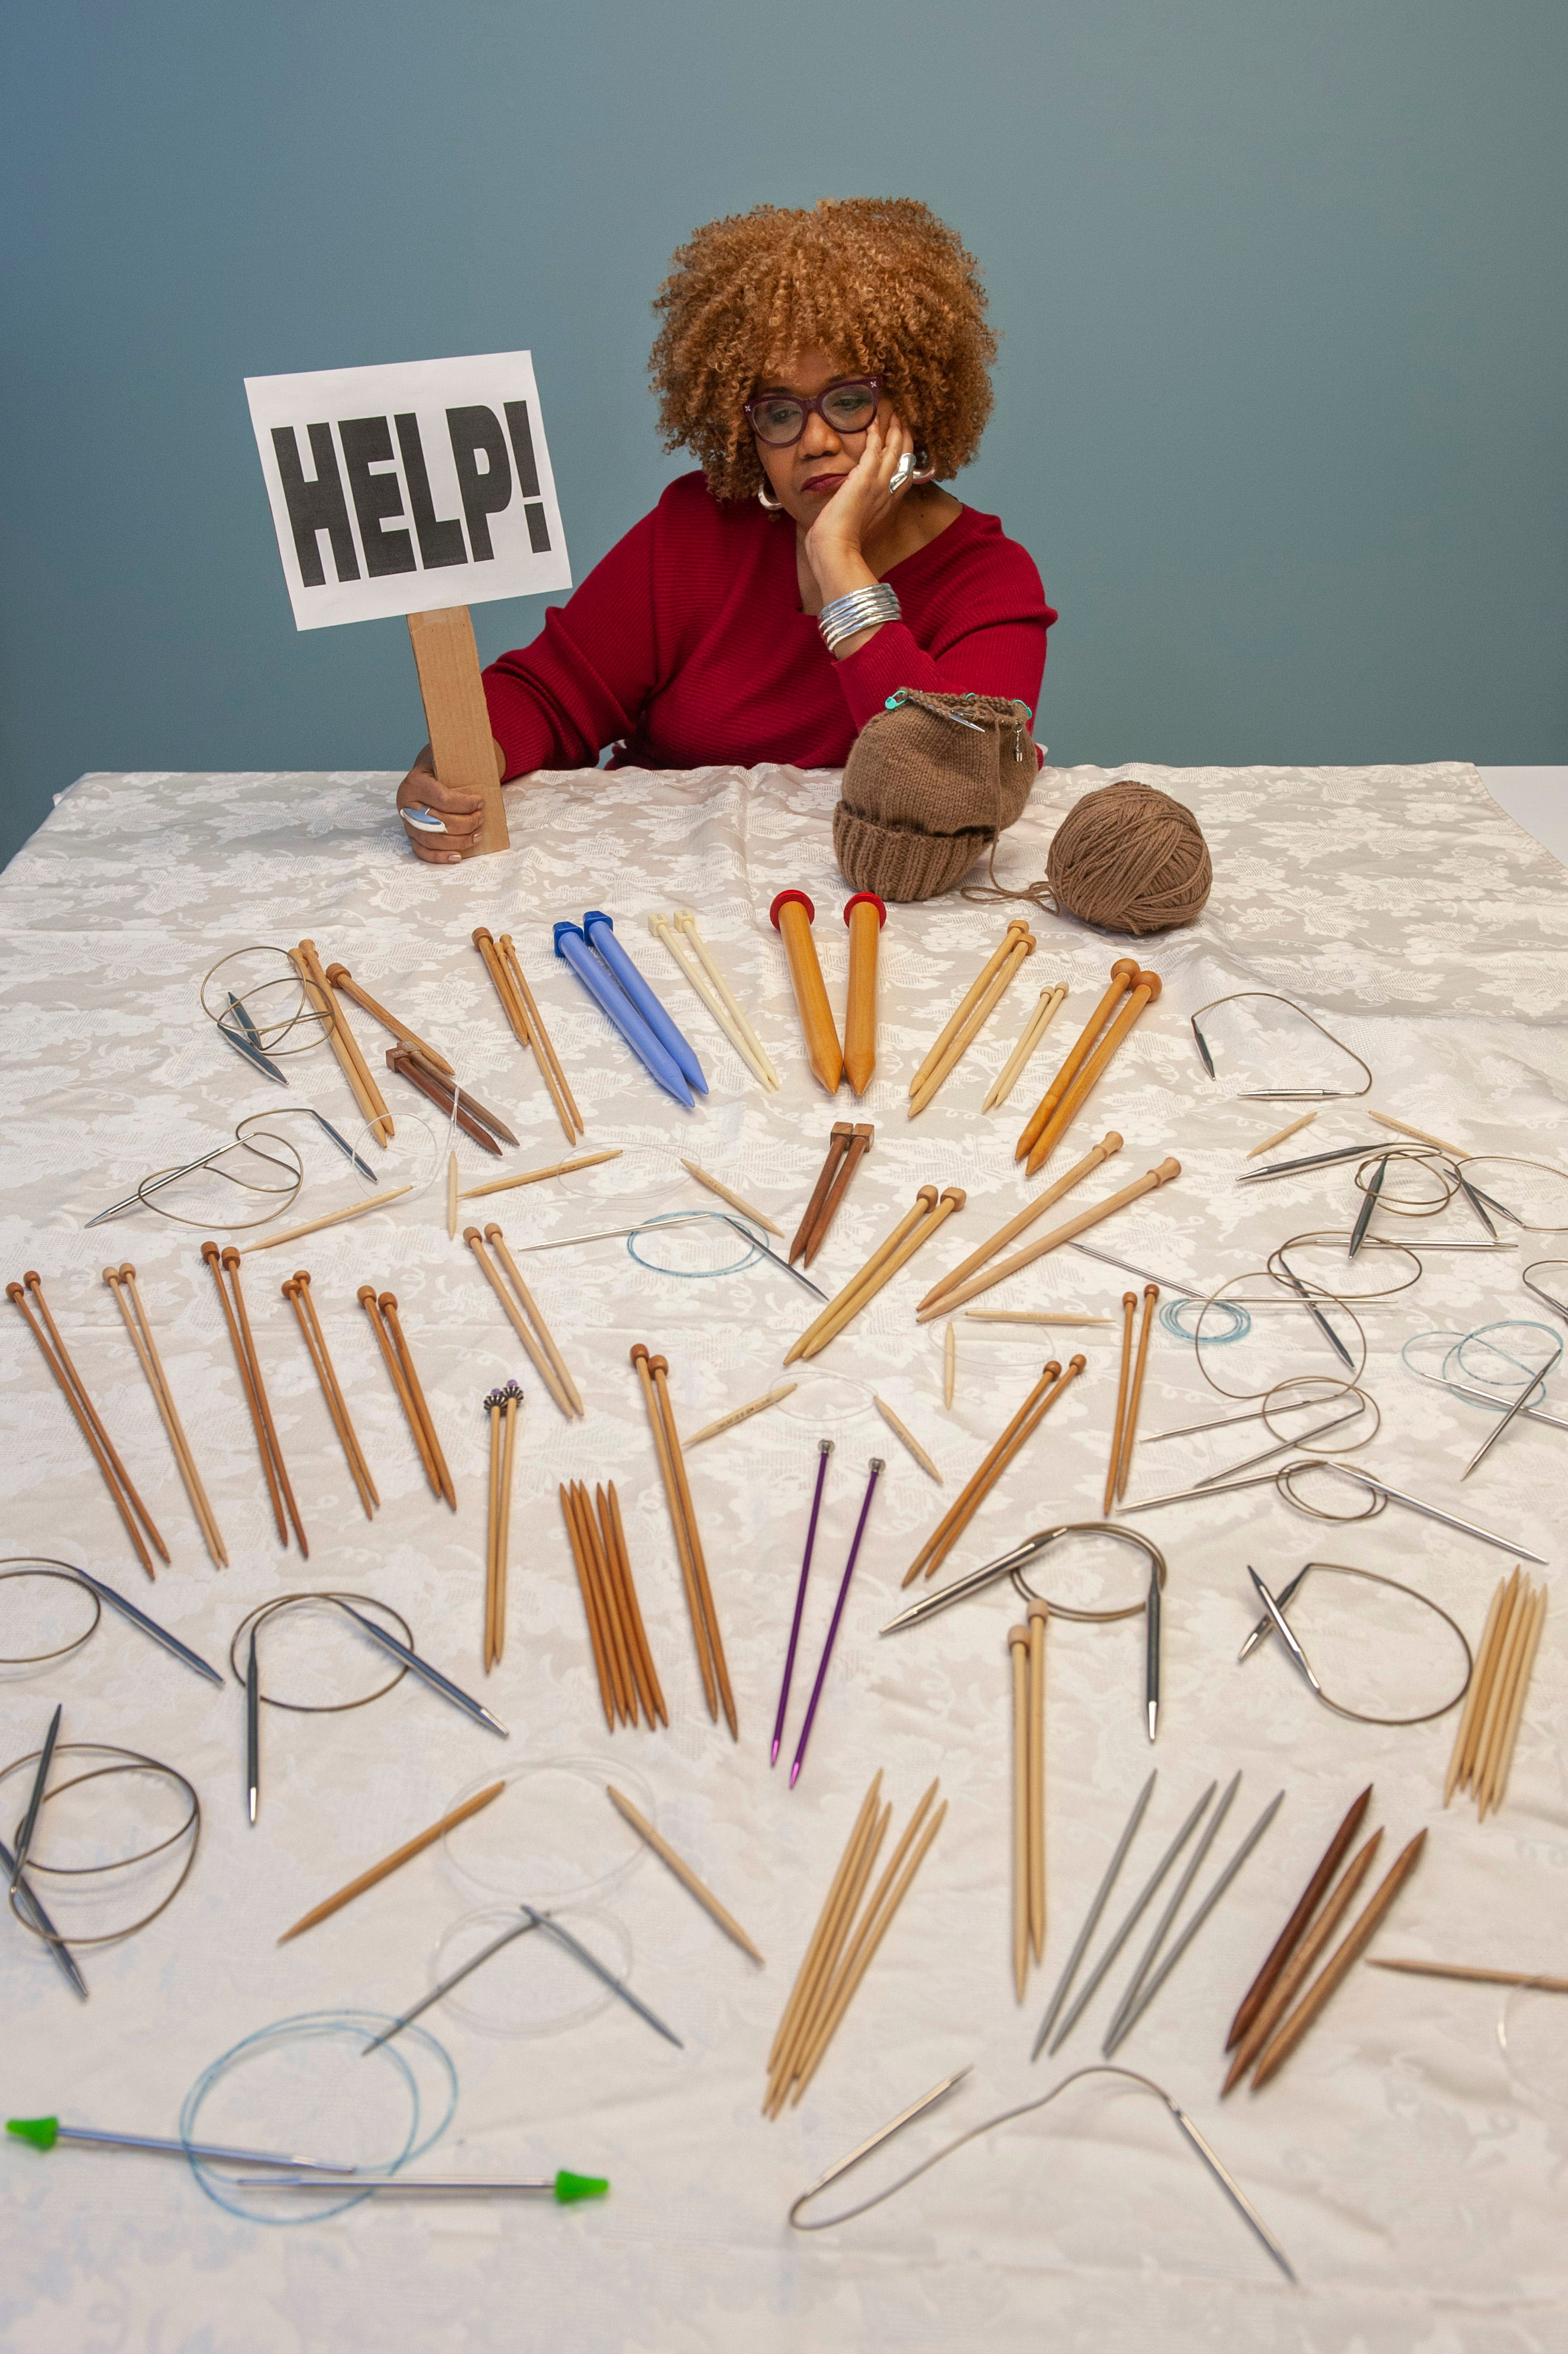 Handmade: Knitting needle collection gets out of hand